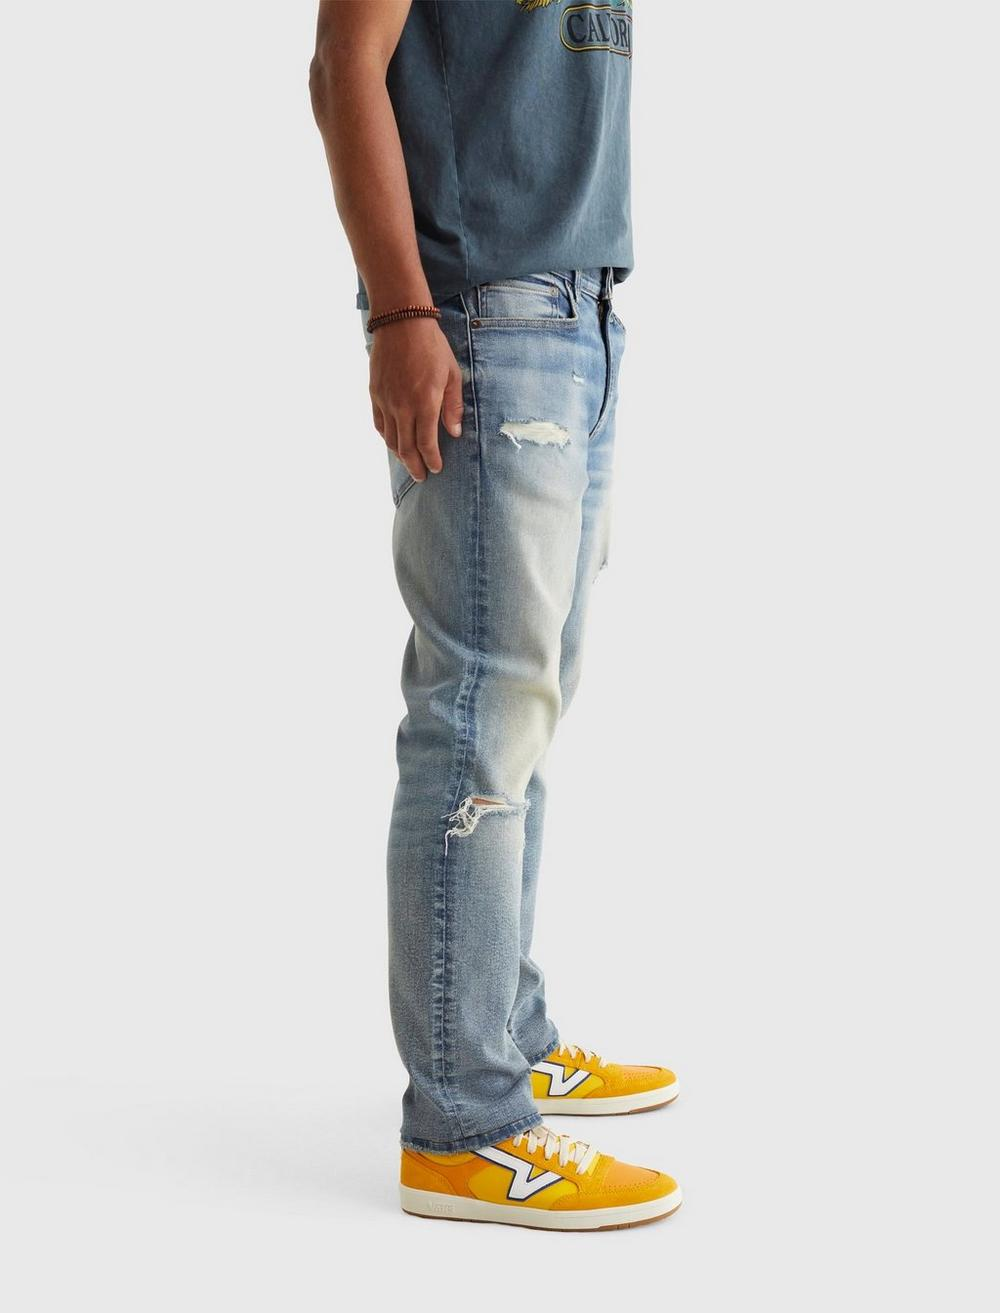 410 ATHLETIC STRAIGHT 4-WAY STRETCH JEAN, image 2